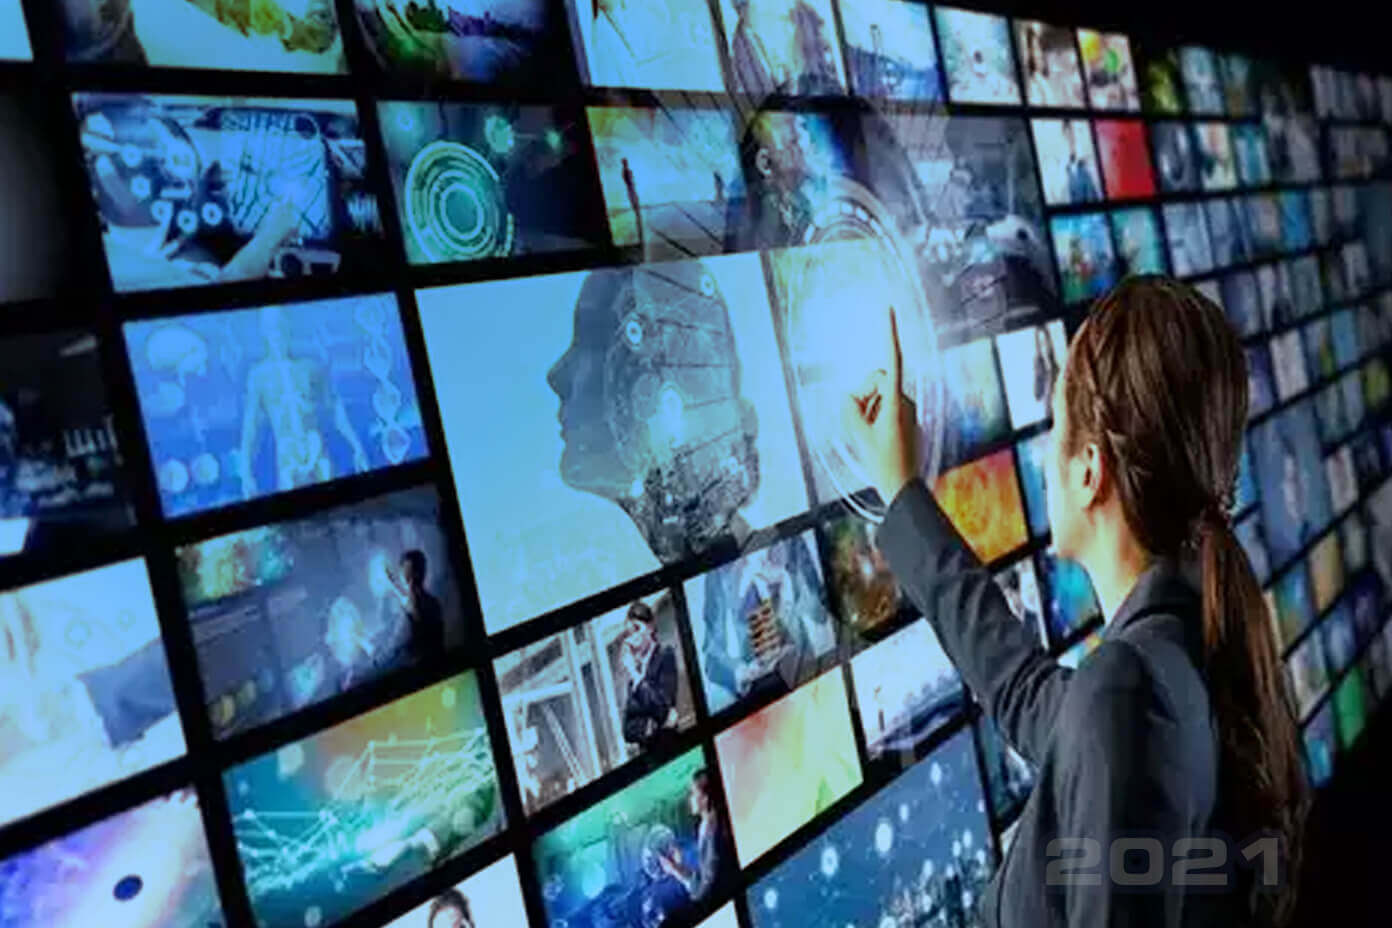 Digital Technology Outlook for Media & Entertainment Industry